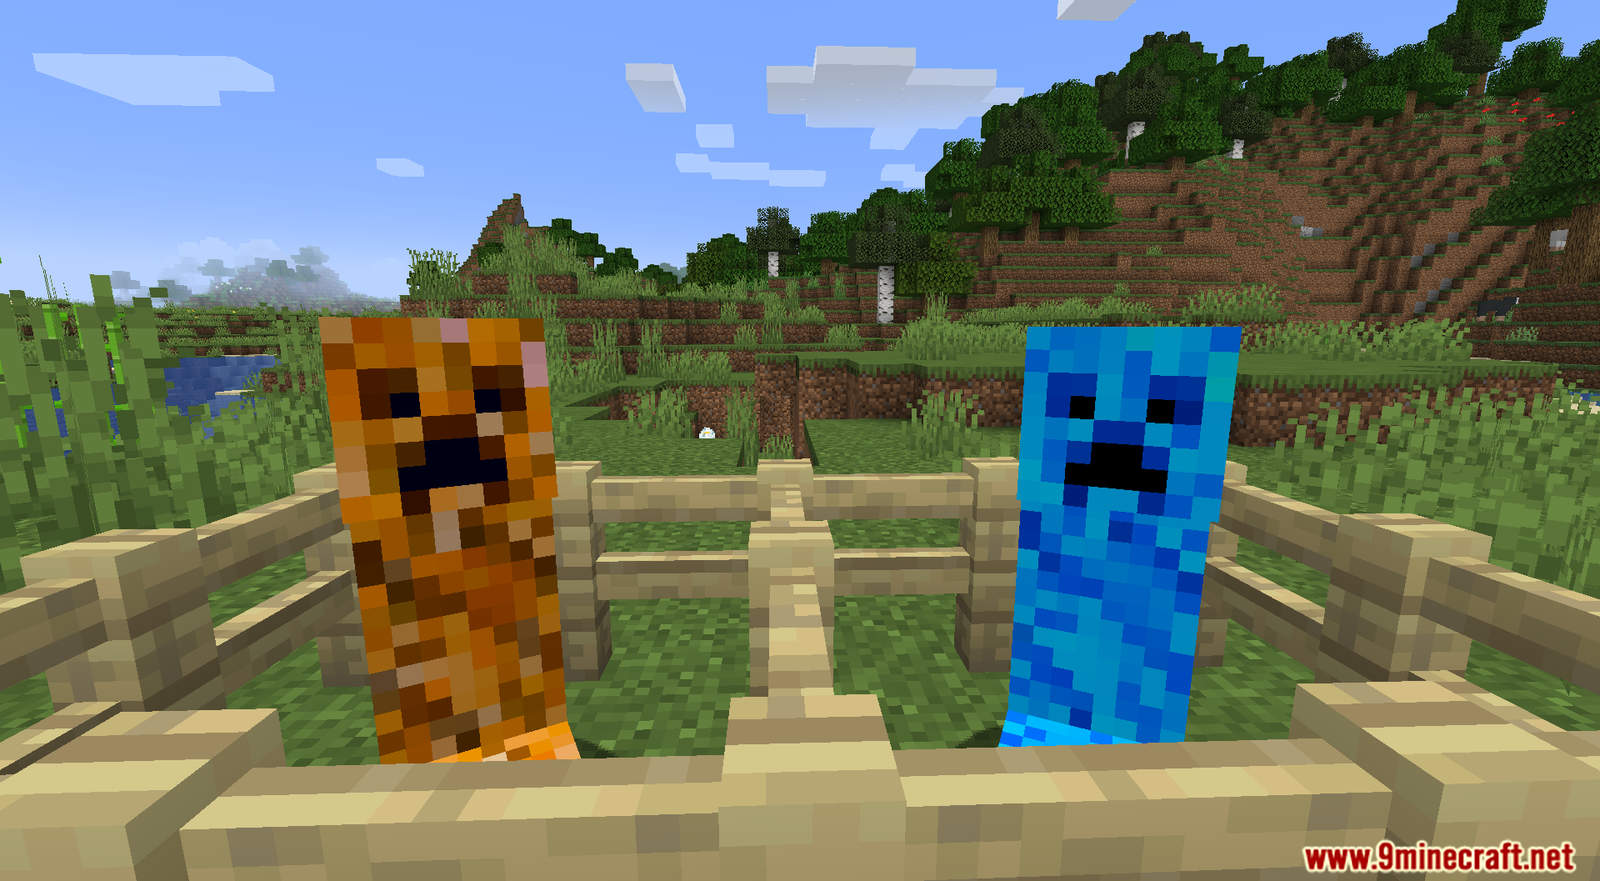 Crazy Creepers mod for Minecraft (13)